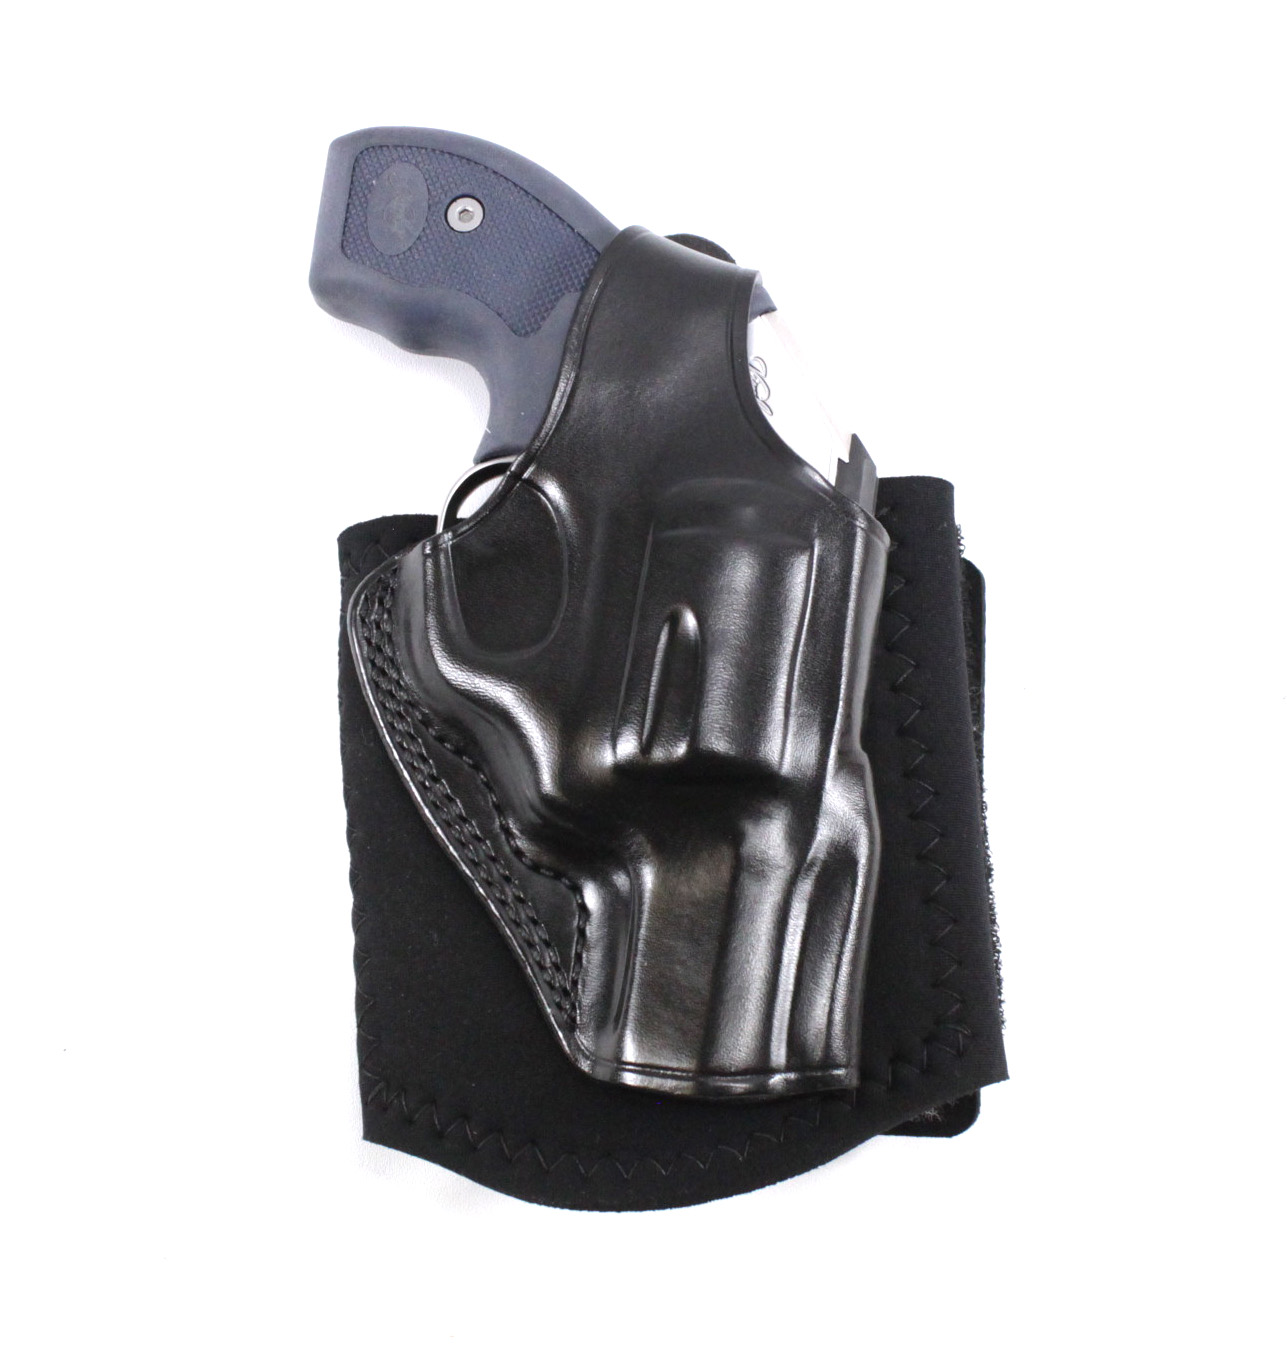 Galco Ankle Glove Smith & Wesson Kimber K6 Ankle Holster Ruger SP101, LCR,  and MORE